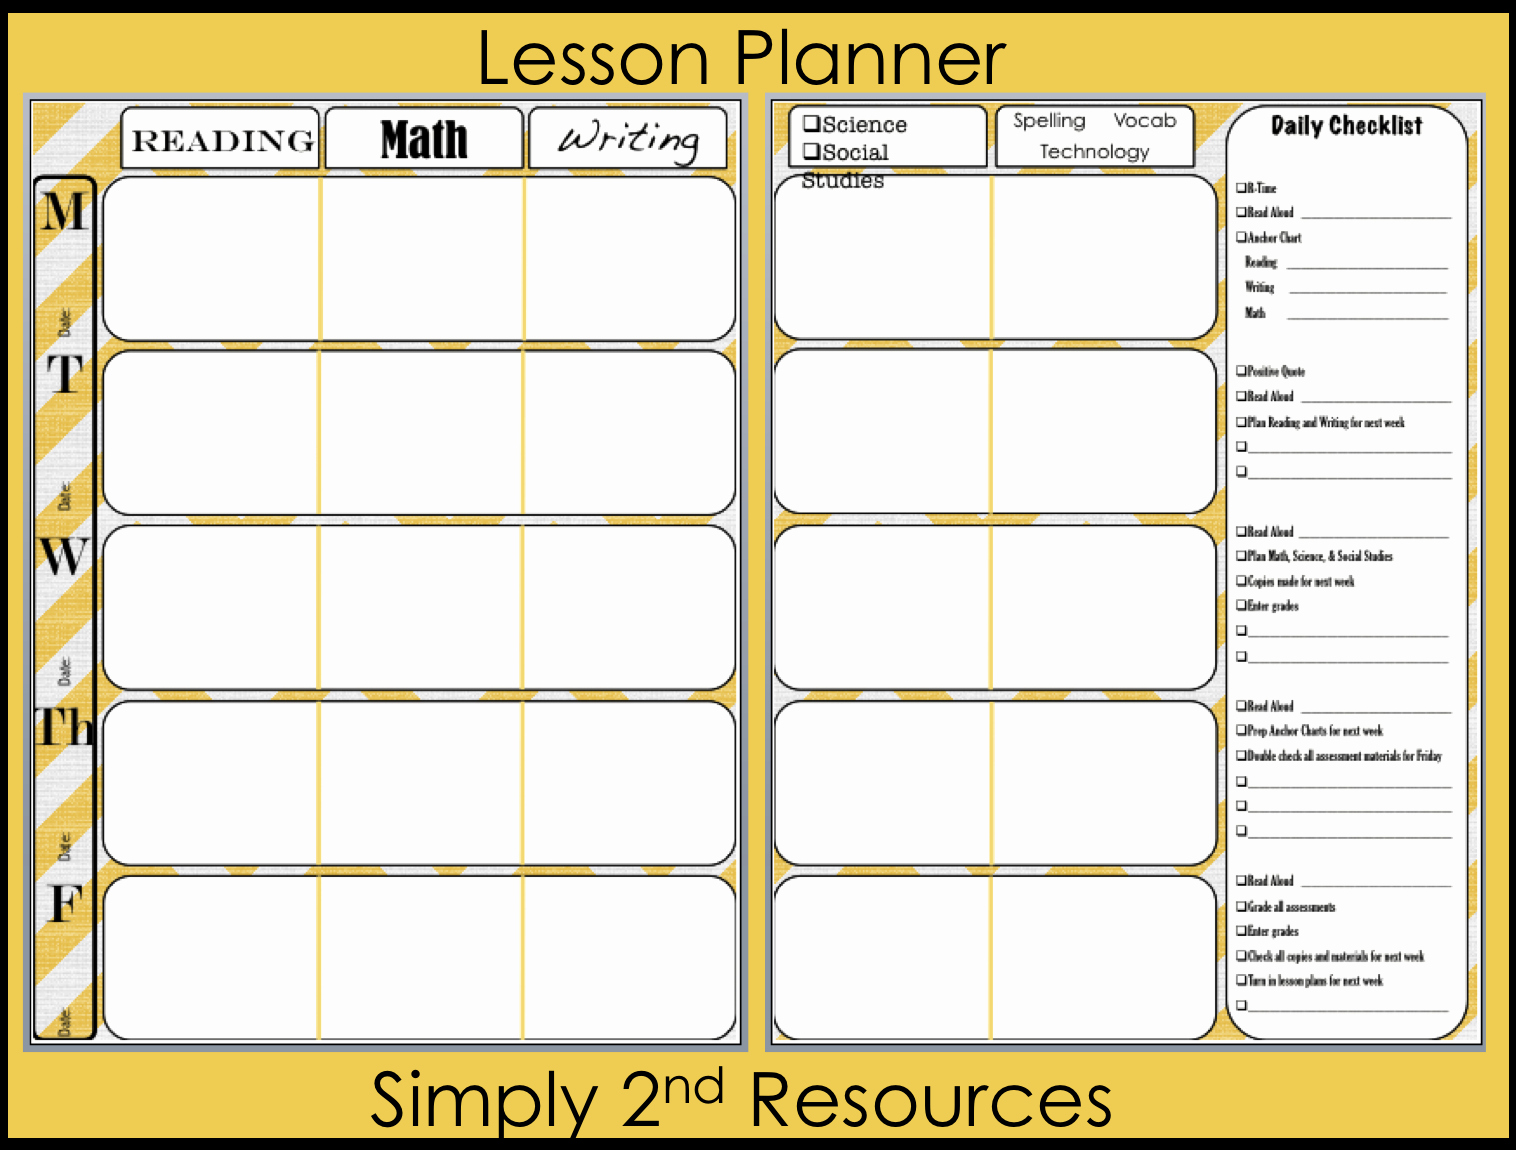 Lesson Plan Template for Teachers Fresh Simply 2nd Resources Lesson Plan Template so Excited to